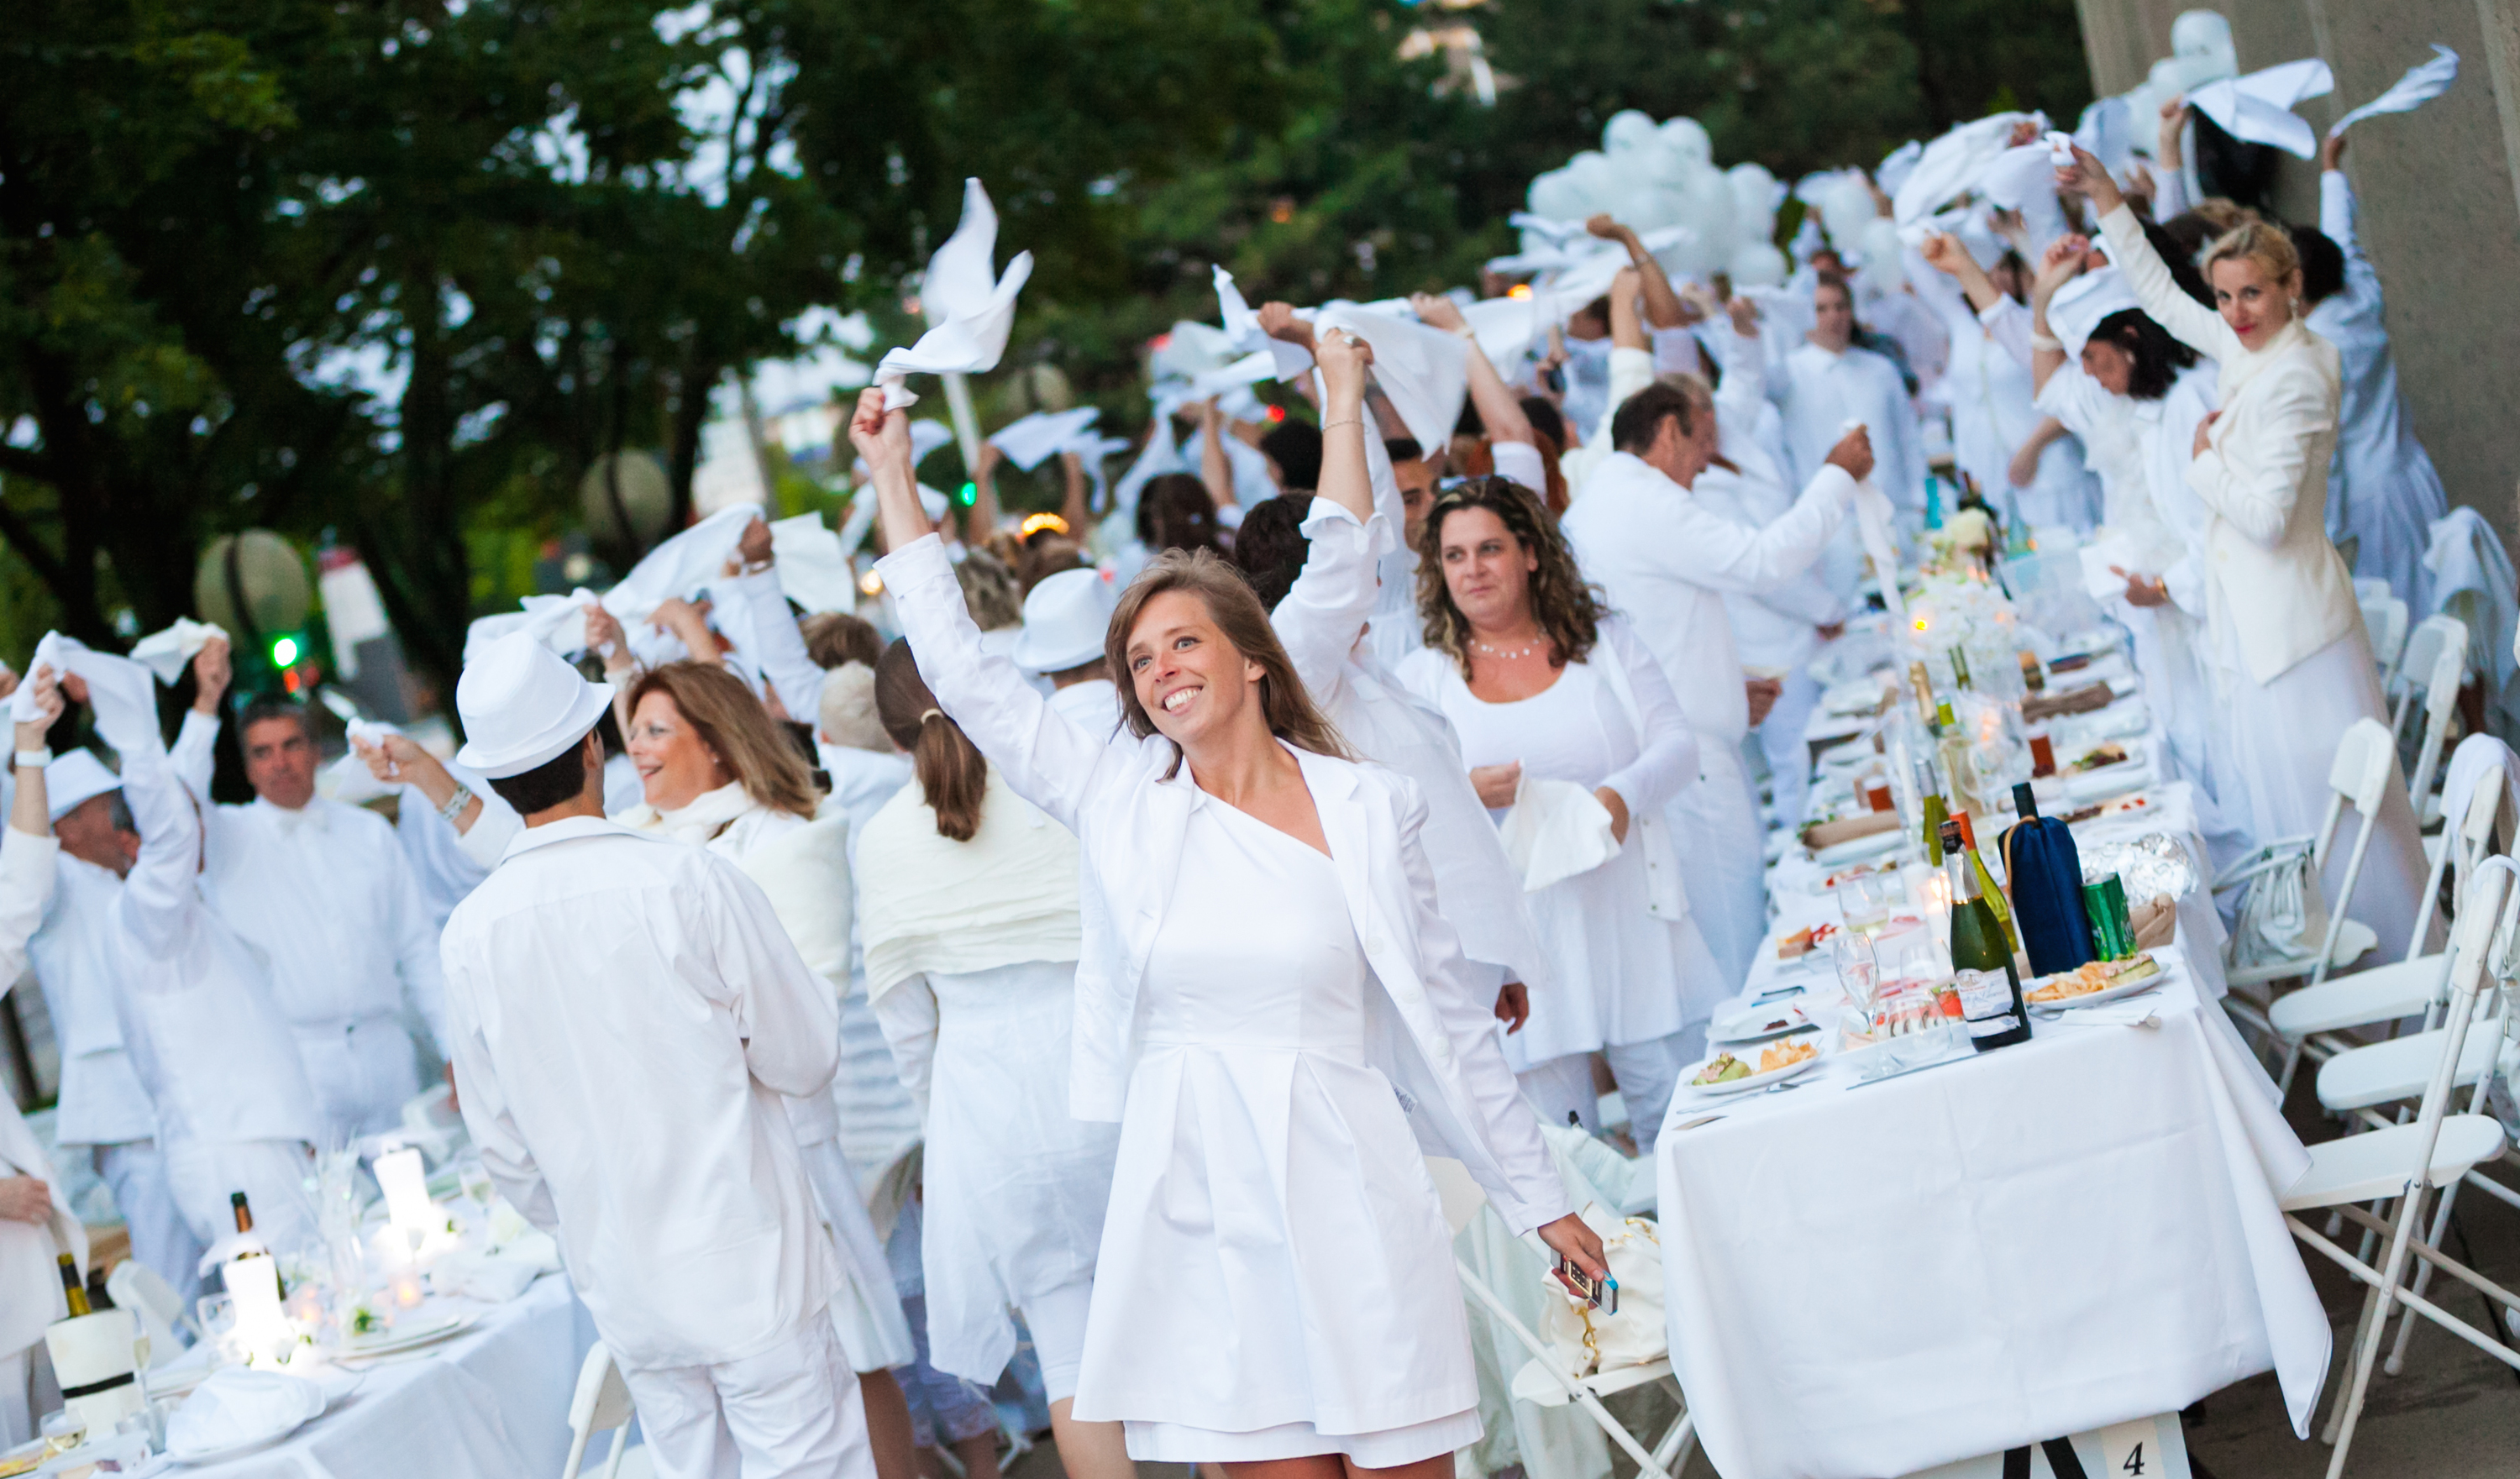 Tickets to Dîner en Blanc on sale today